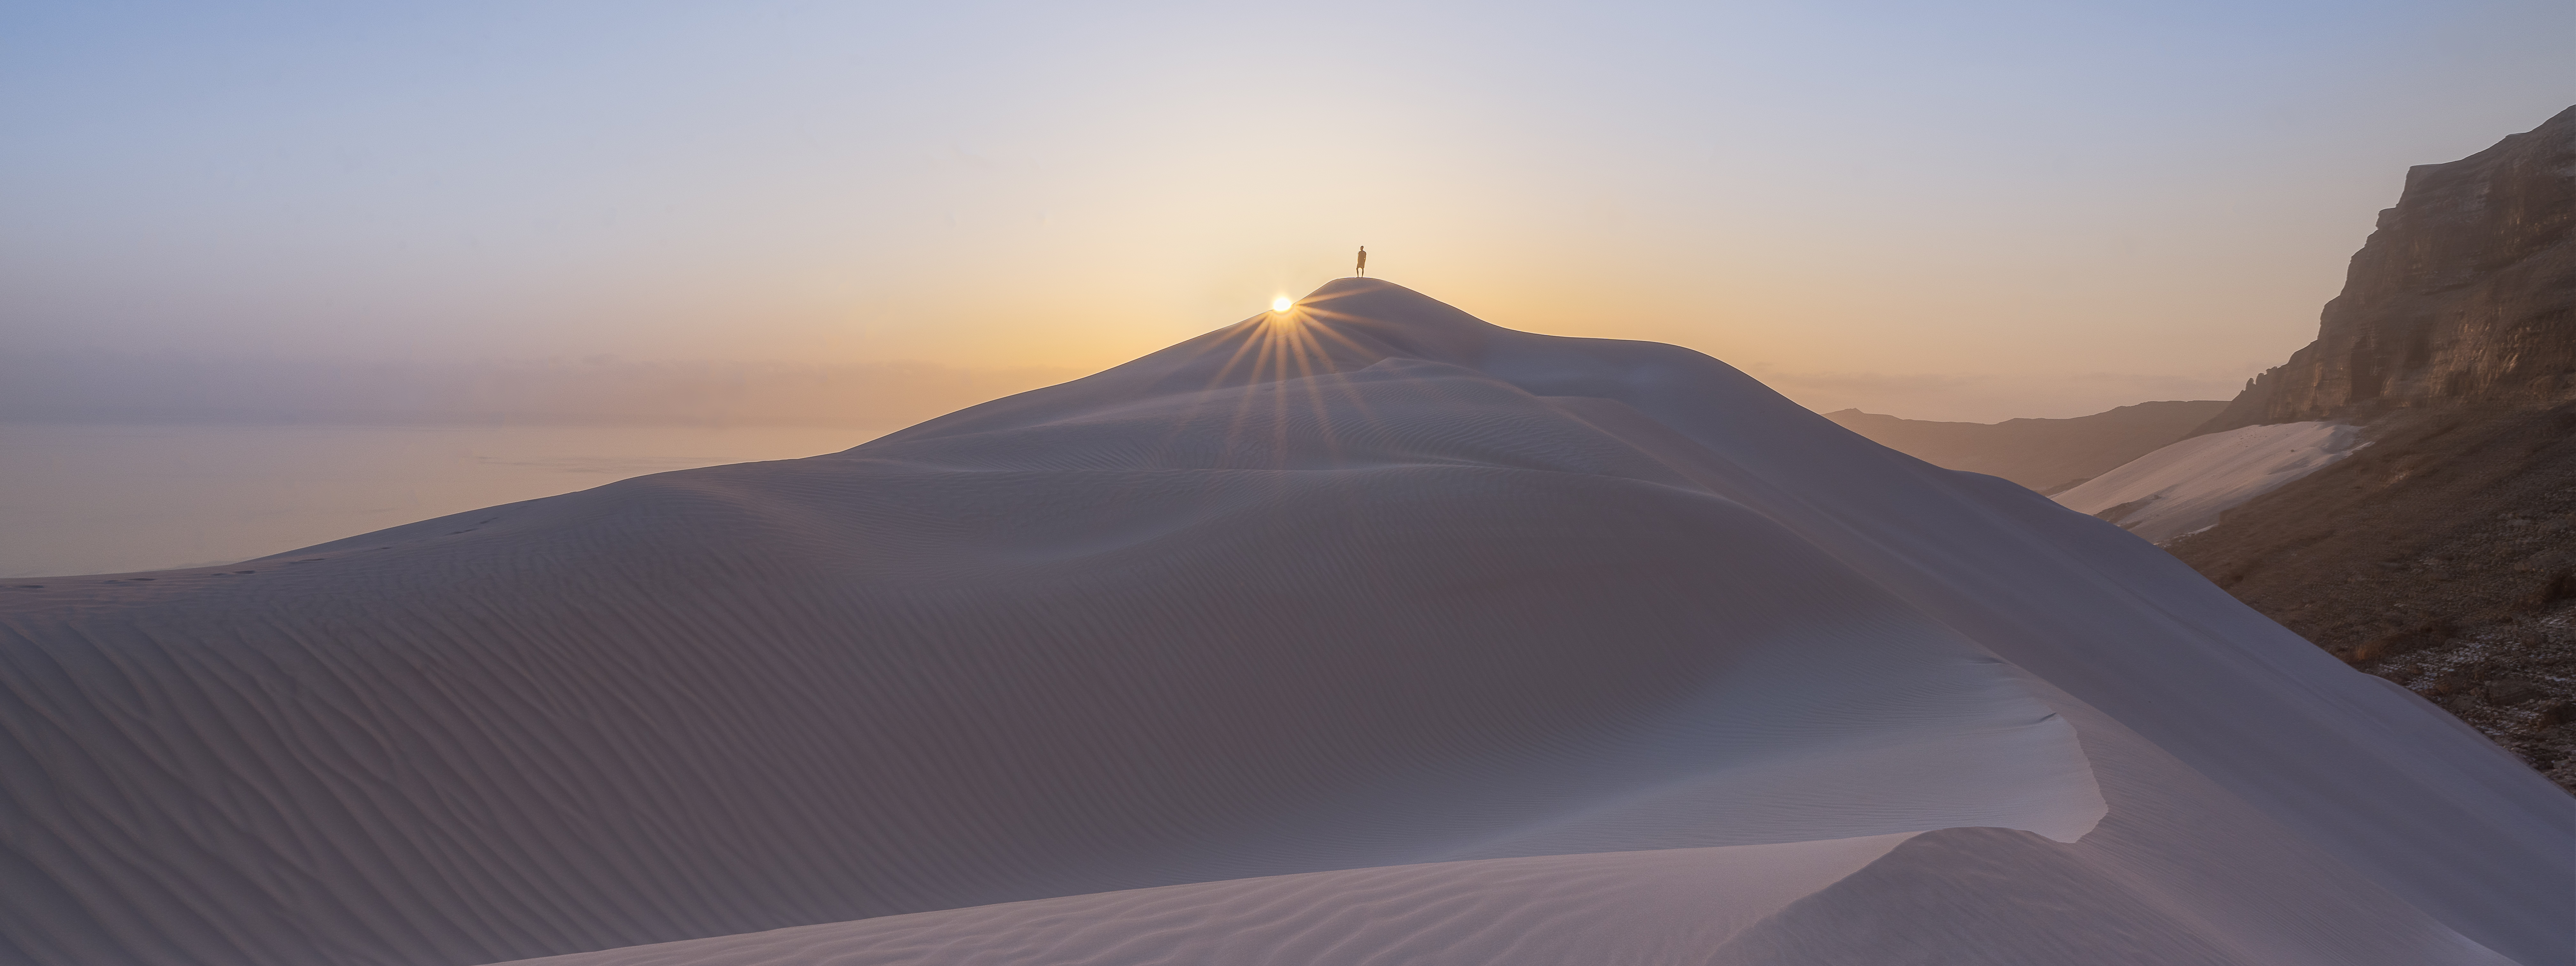 The Arher sand dunes at sunrise are worth waking up for!